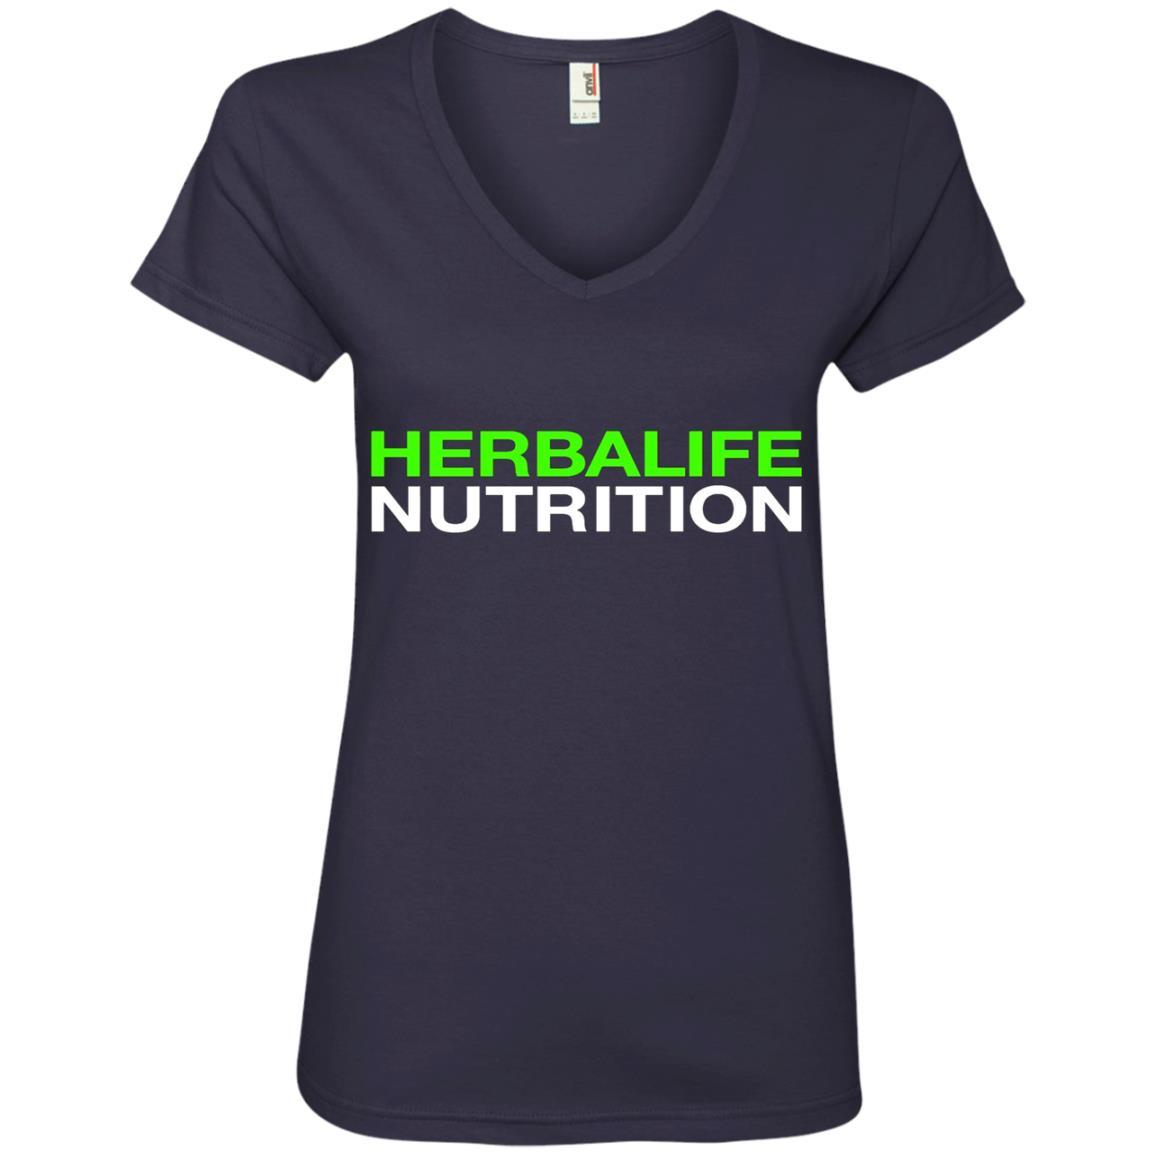 HERBALIFE NUTRITION - Ladies' V-Neck T-Shirt Style / Color / Size